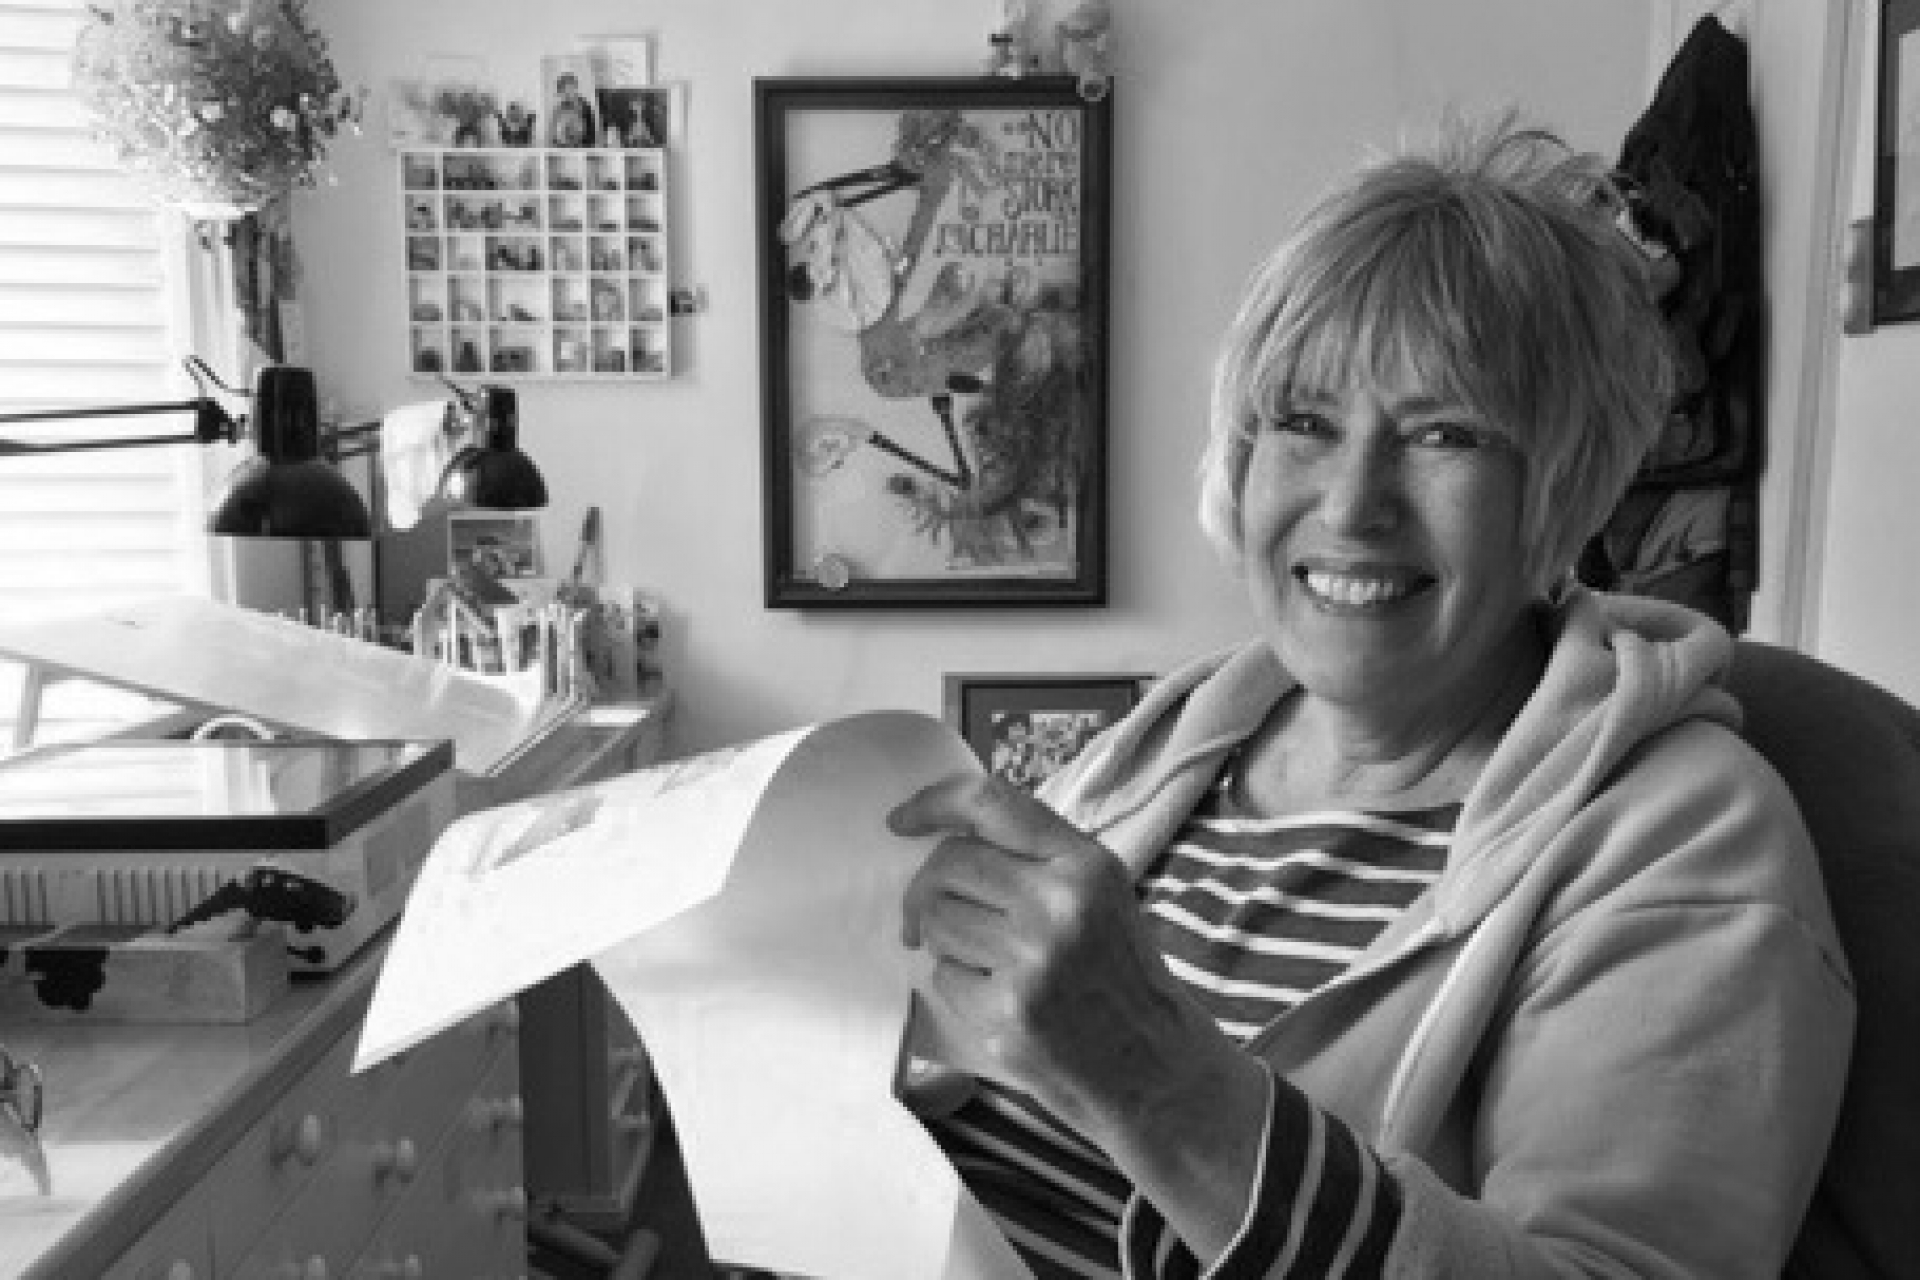 We say goodbye to Jill Murphy, author of The Worst Witch, who dies aged 72